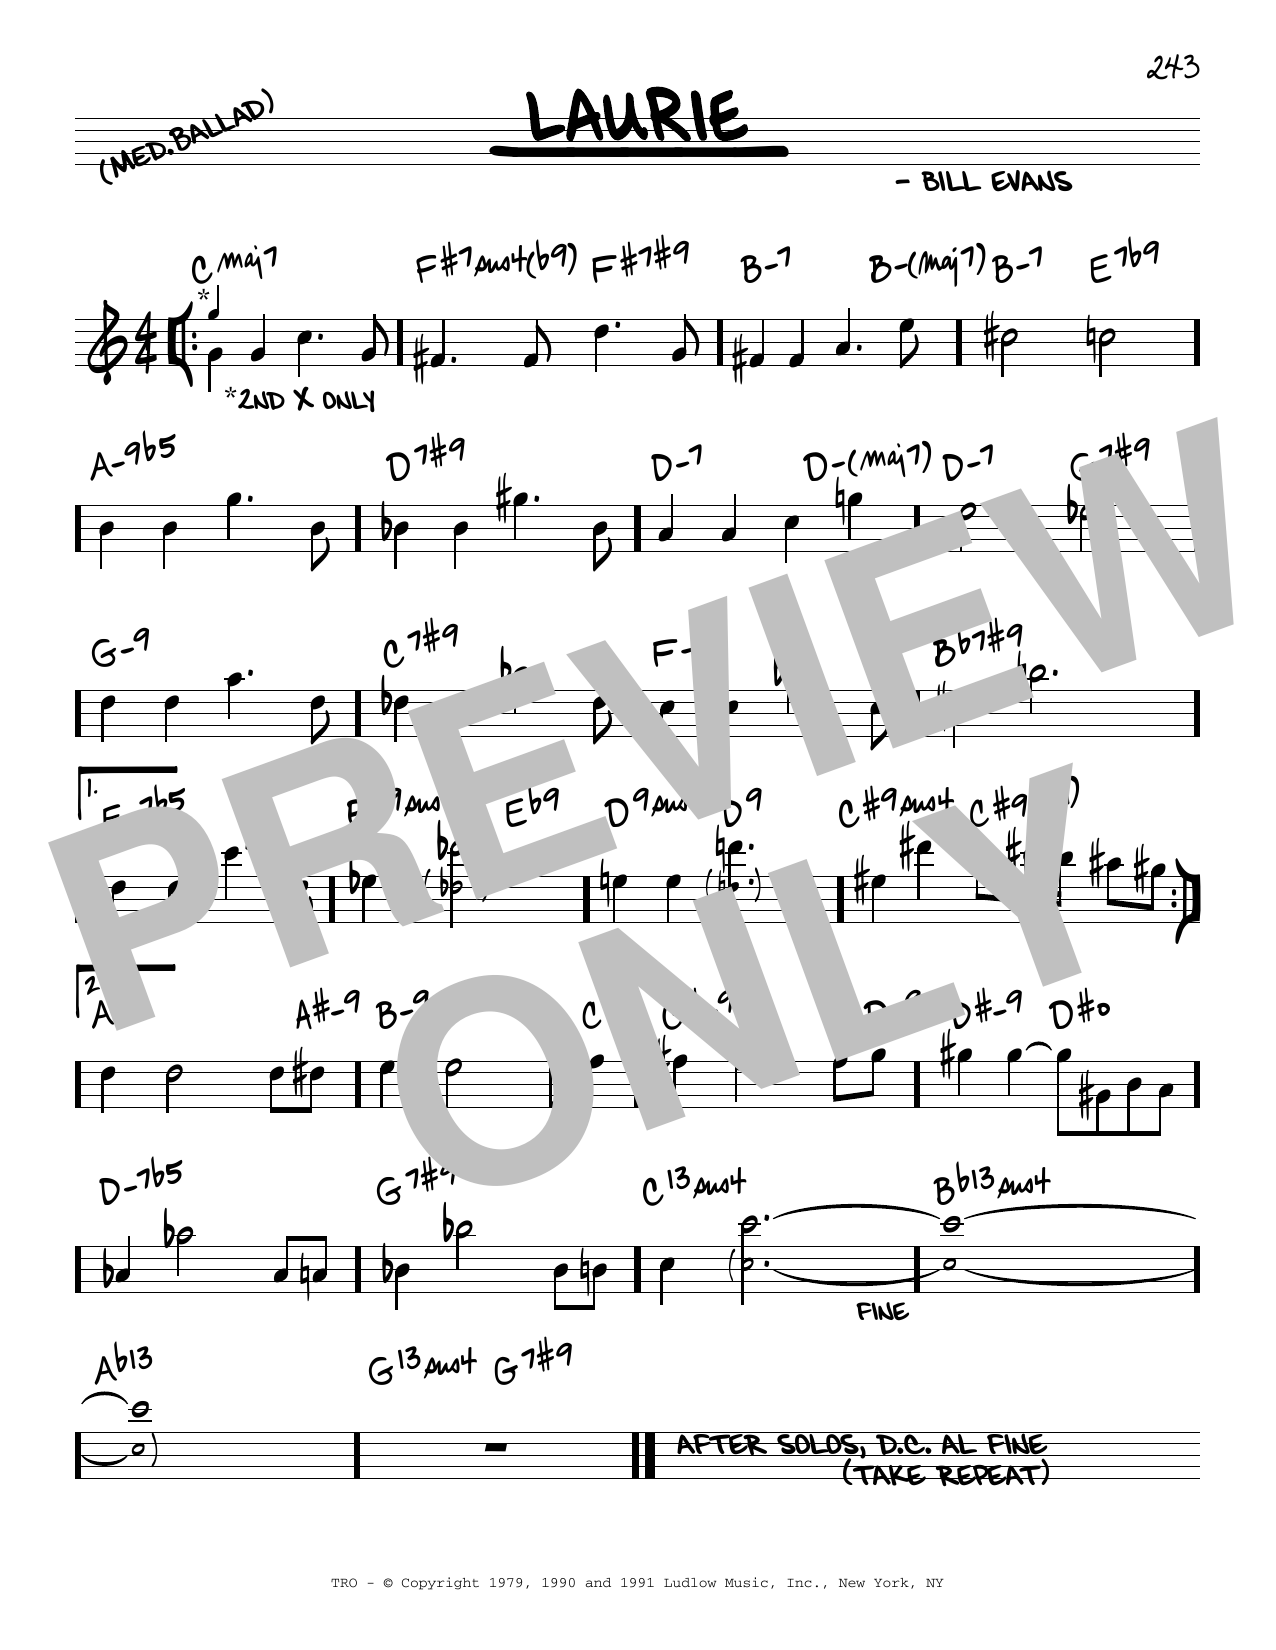 Bill Evans Laurie sheet music notes and chords. Download Printable PDF.